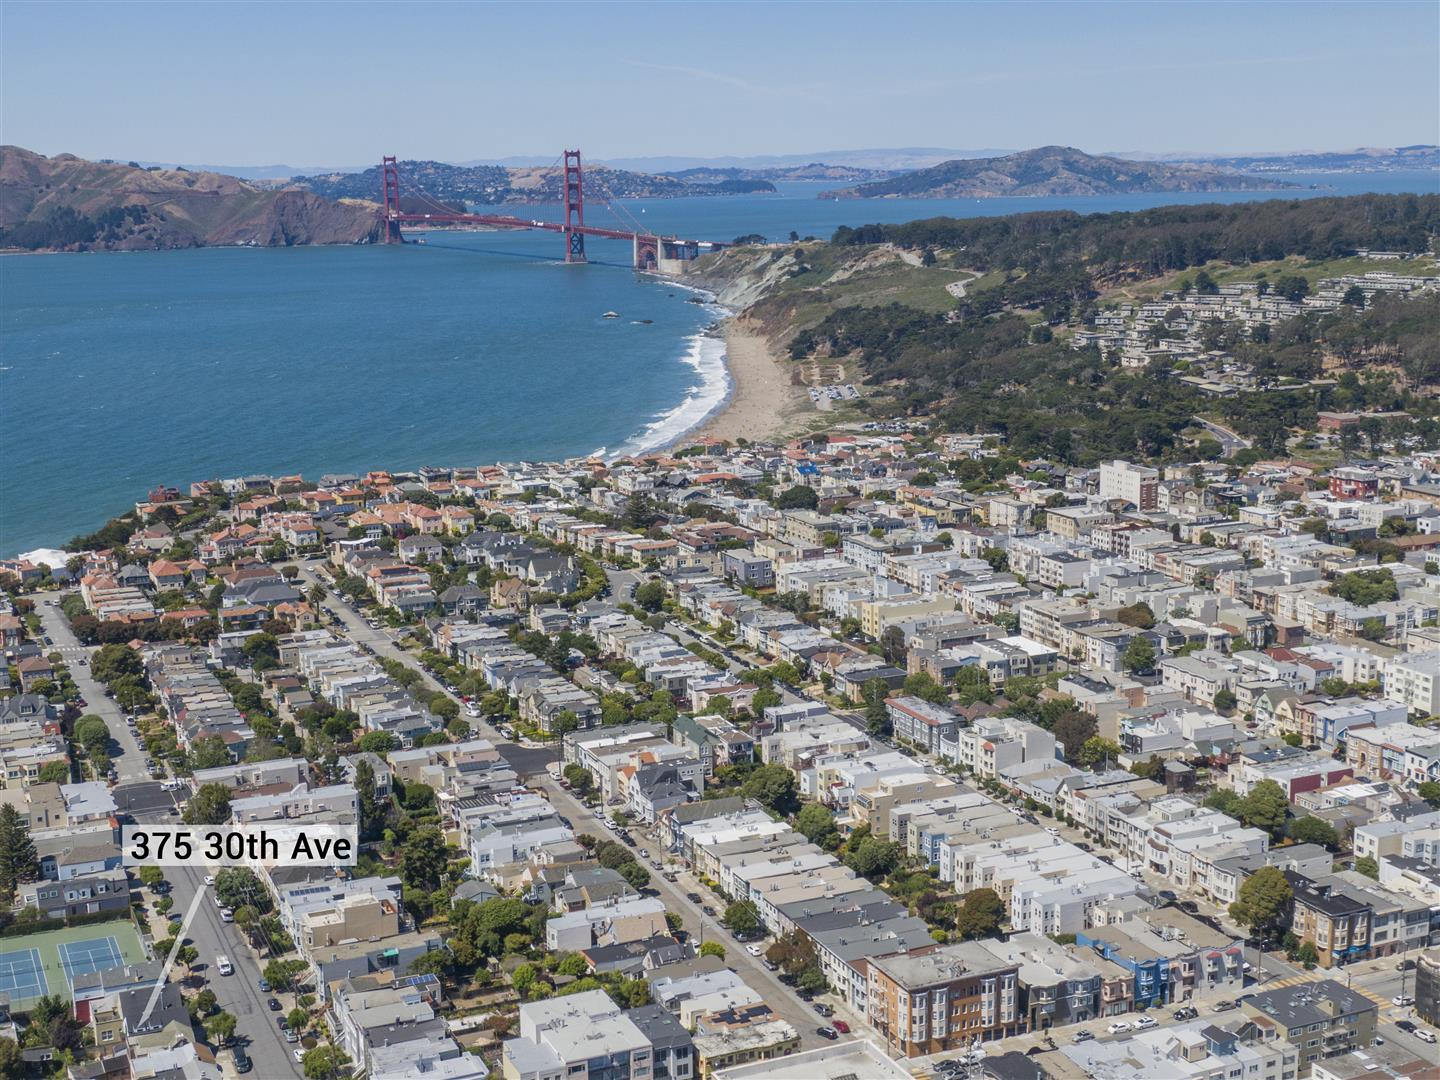 28-MLS-375-30th-Ave-San-Francisco71.jpg #30